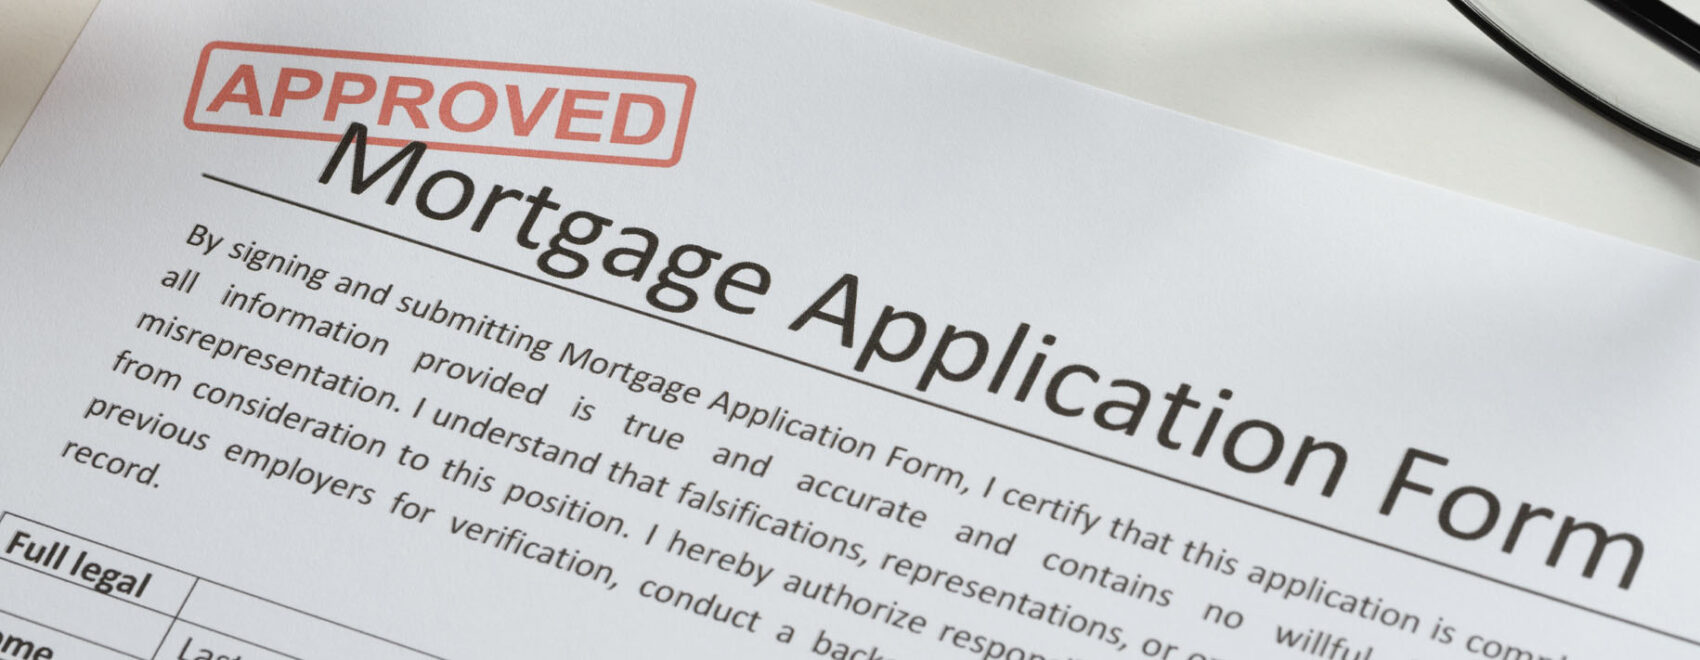 Image of a mortgage application